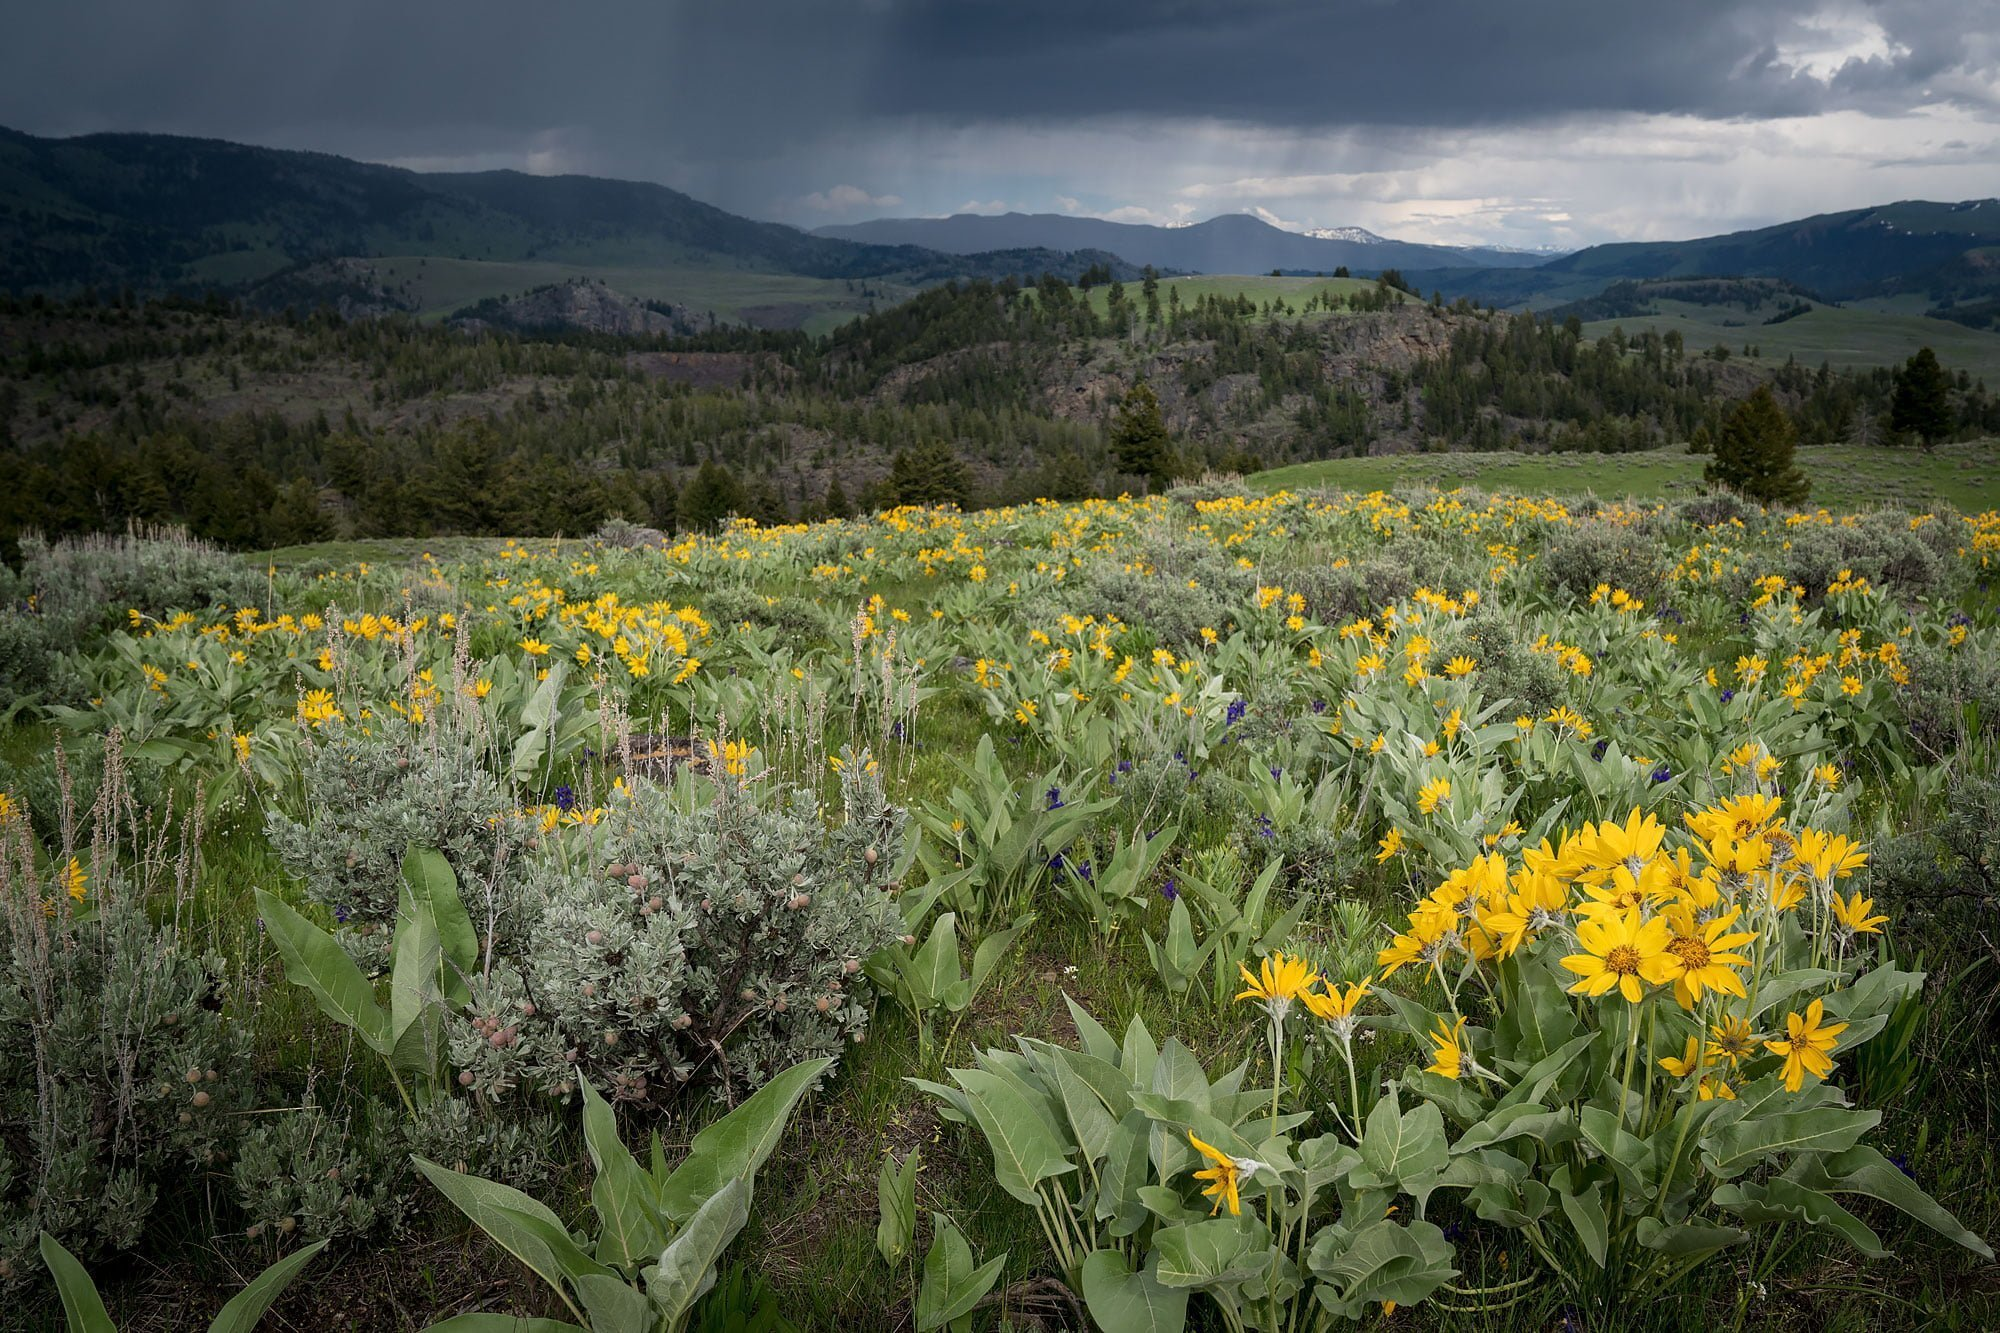 Rain clouds over hills and a field of yellow wildflowers in Yellowstone Park, Wyoming